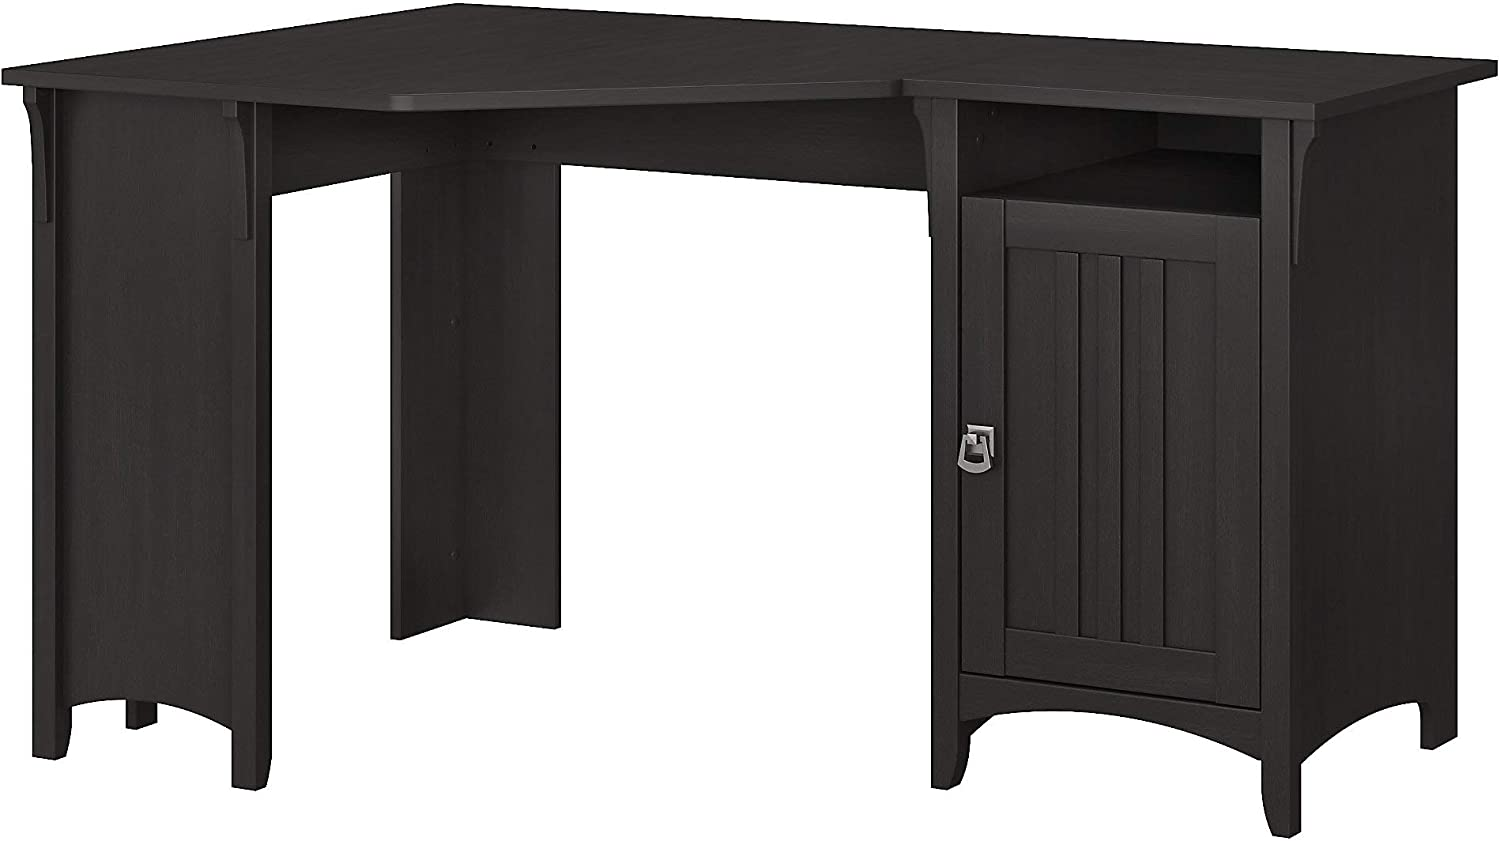 Bush Furniture Salinas 55W Corner Desk with Storage in Vintage Black